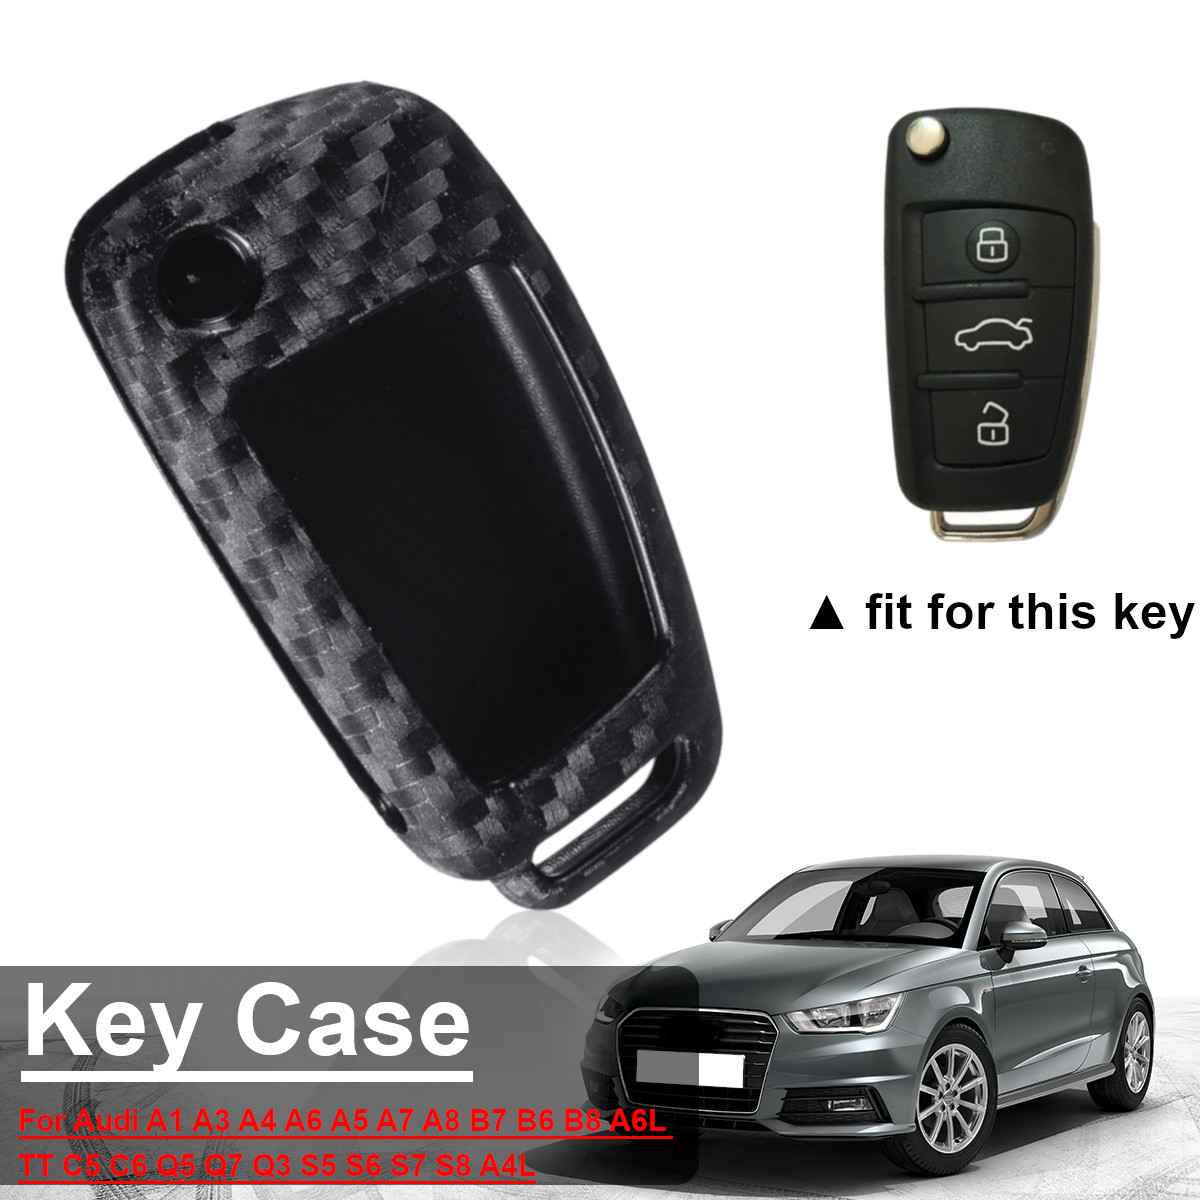 Luxury One-button Start Hard Smart Key Case Cover fit Audi A5 A3 A4 S4 S5 S6 Q5